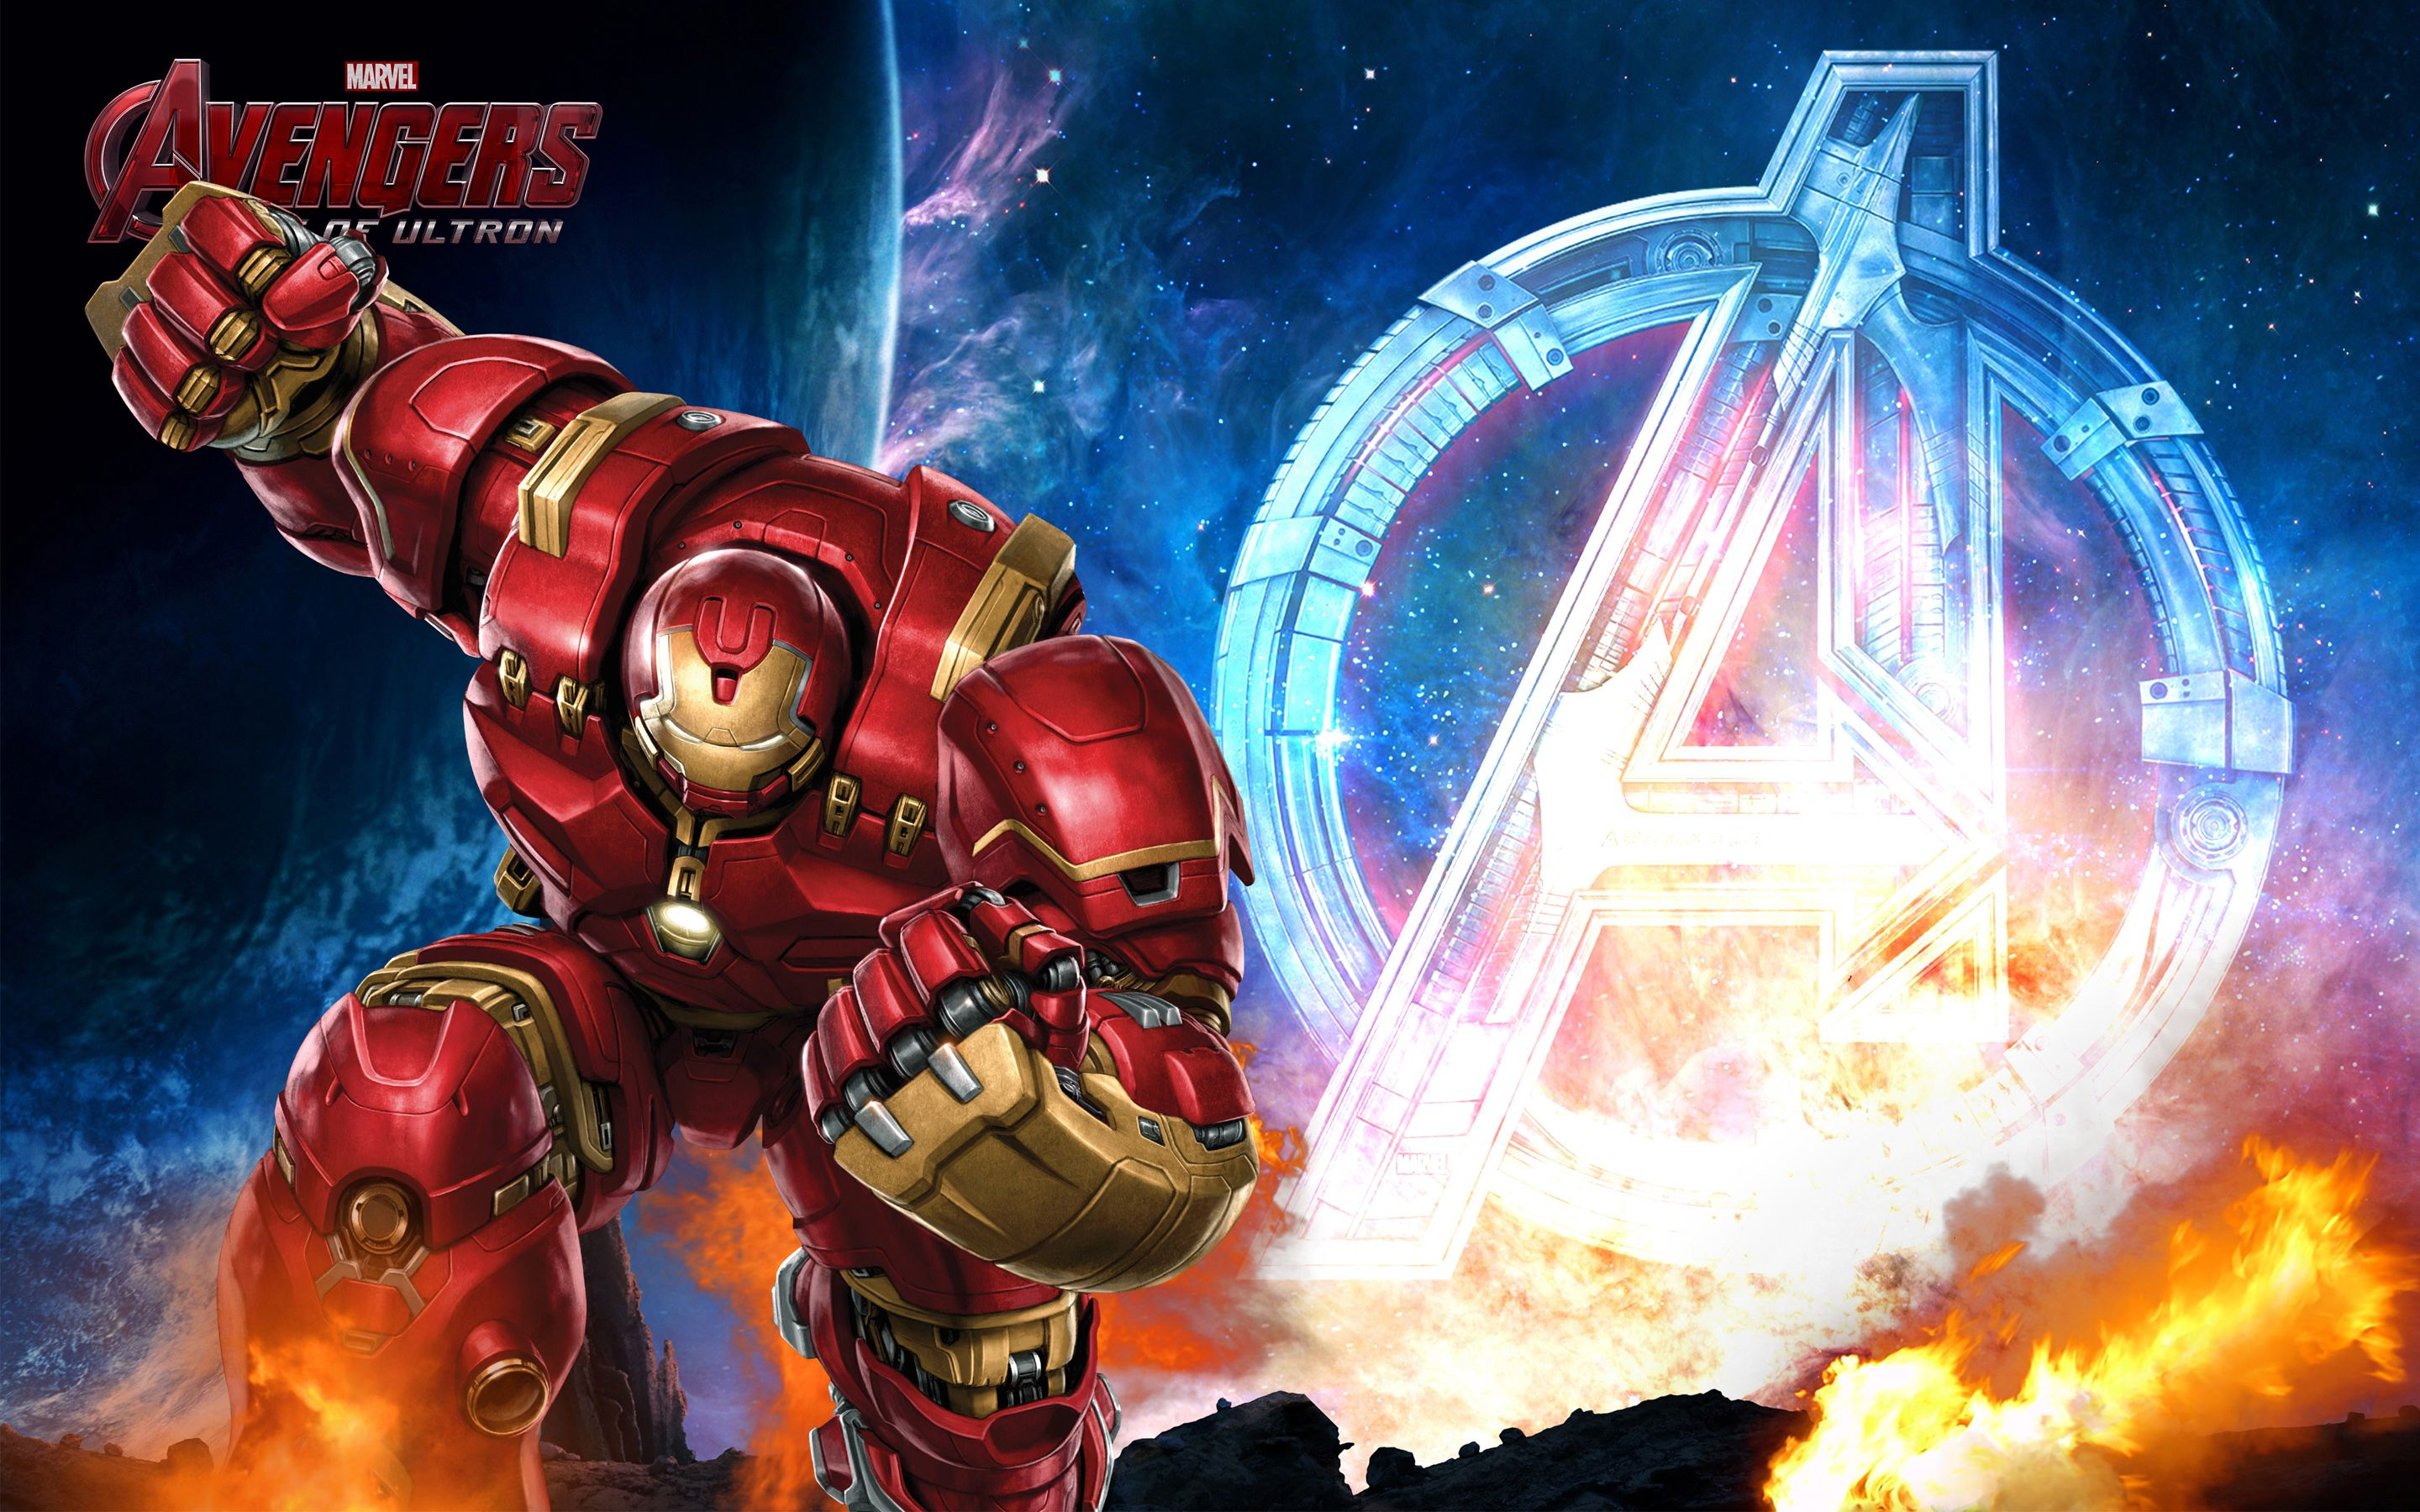 Hd Wallpapers Of Iron Man 3 51 Wallpapers Hd Wallpapers